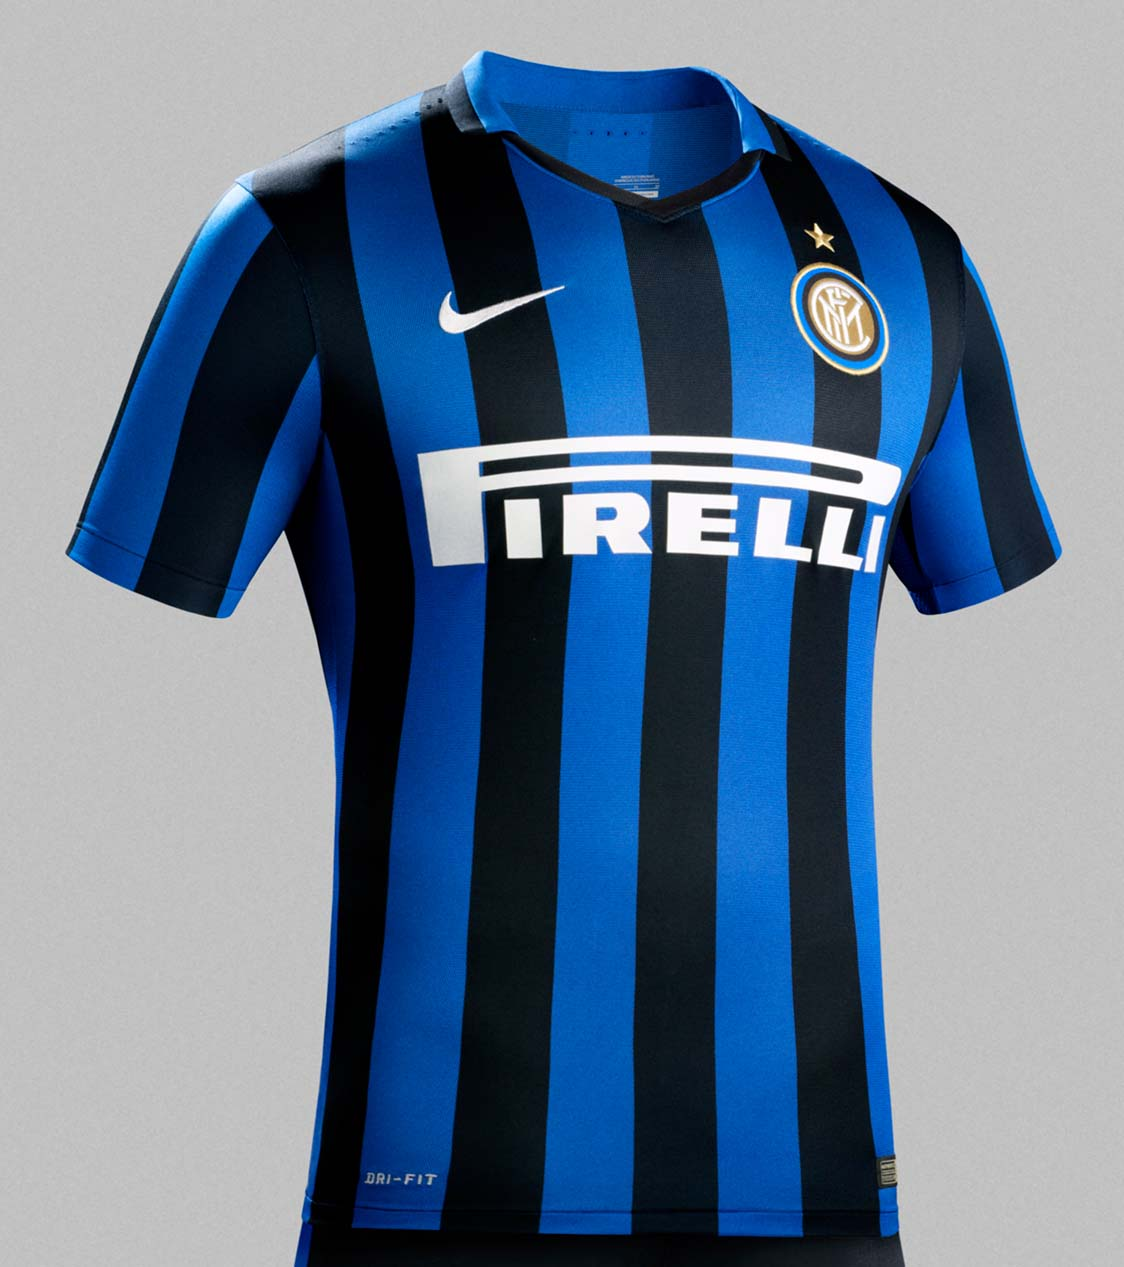 Nike Inter 15 16 Kits Revealed Footy Headlines